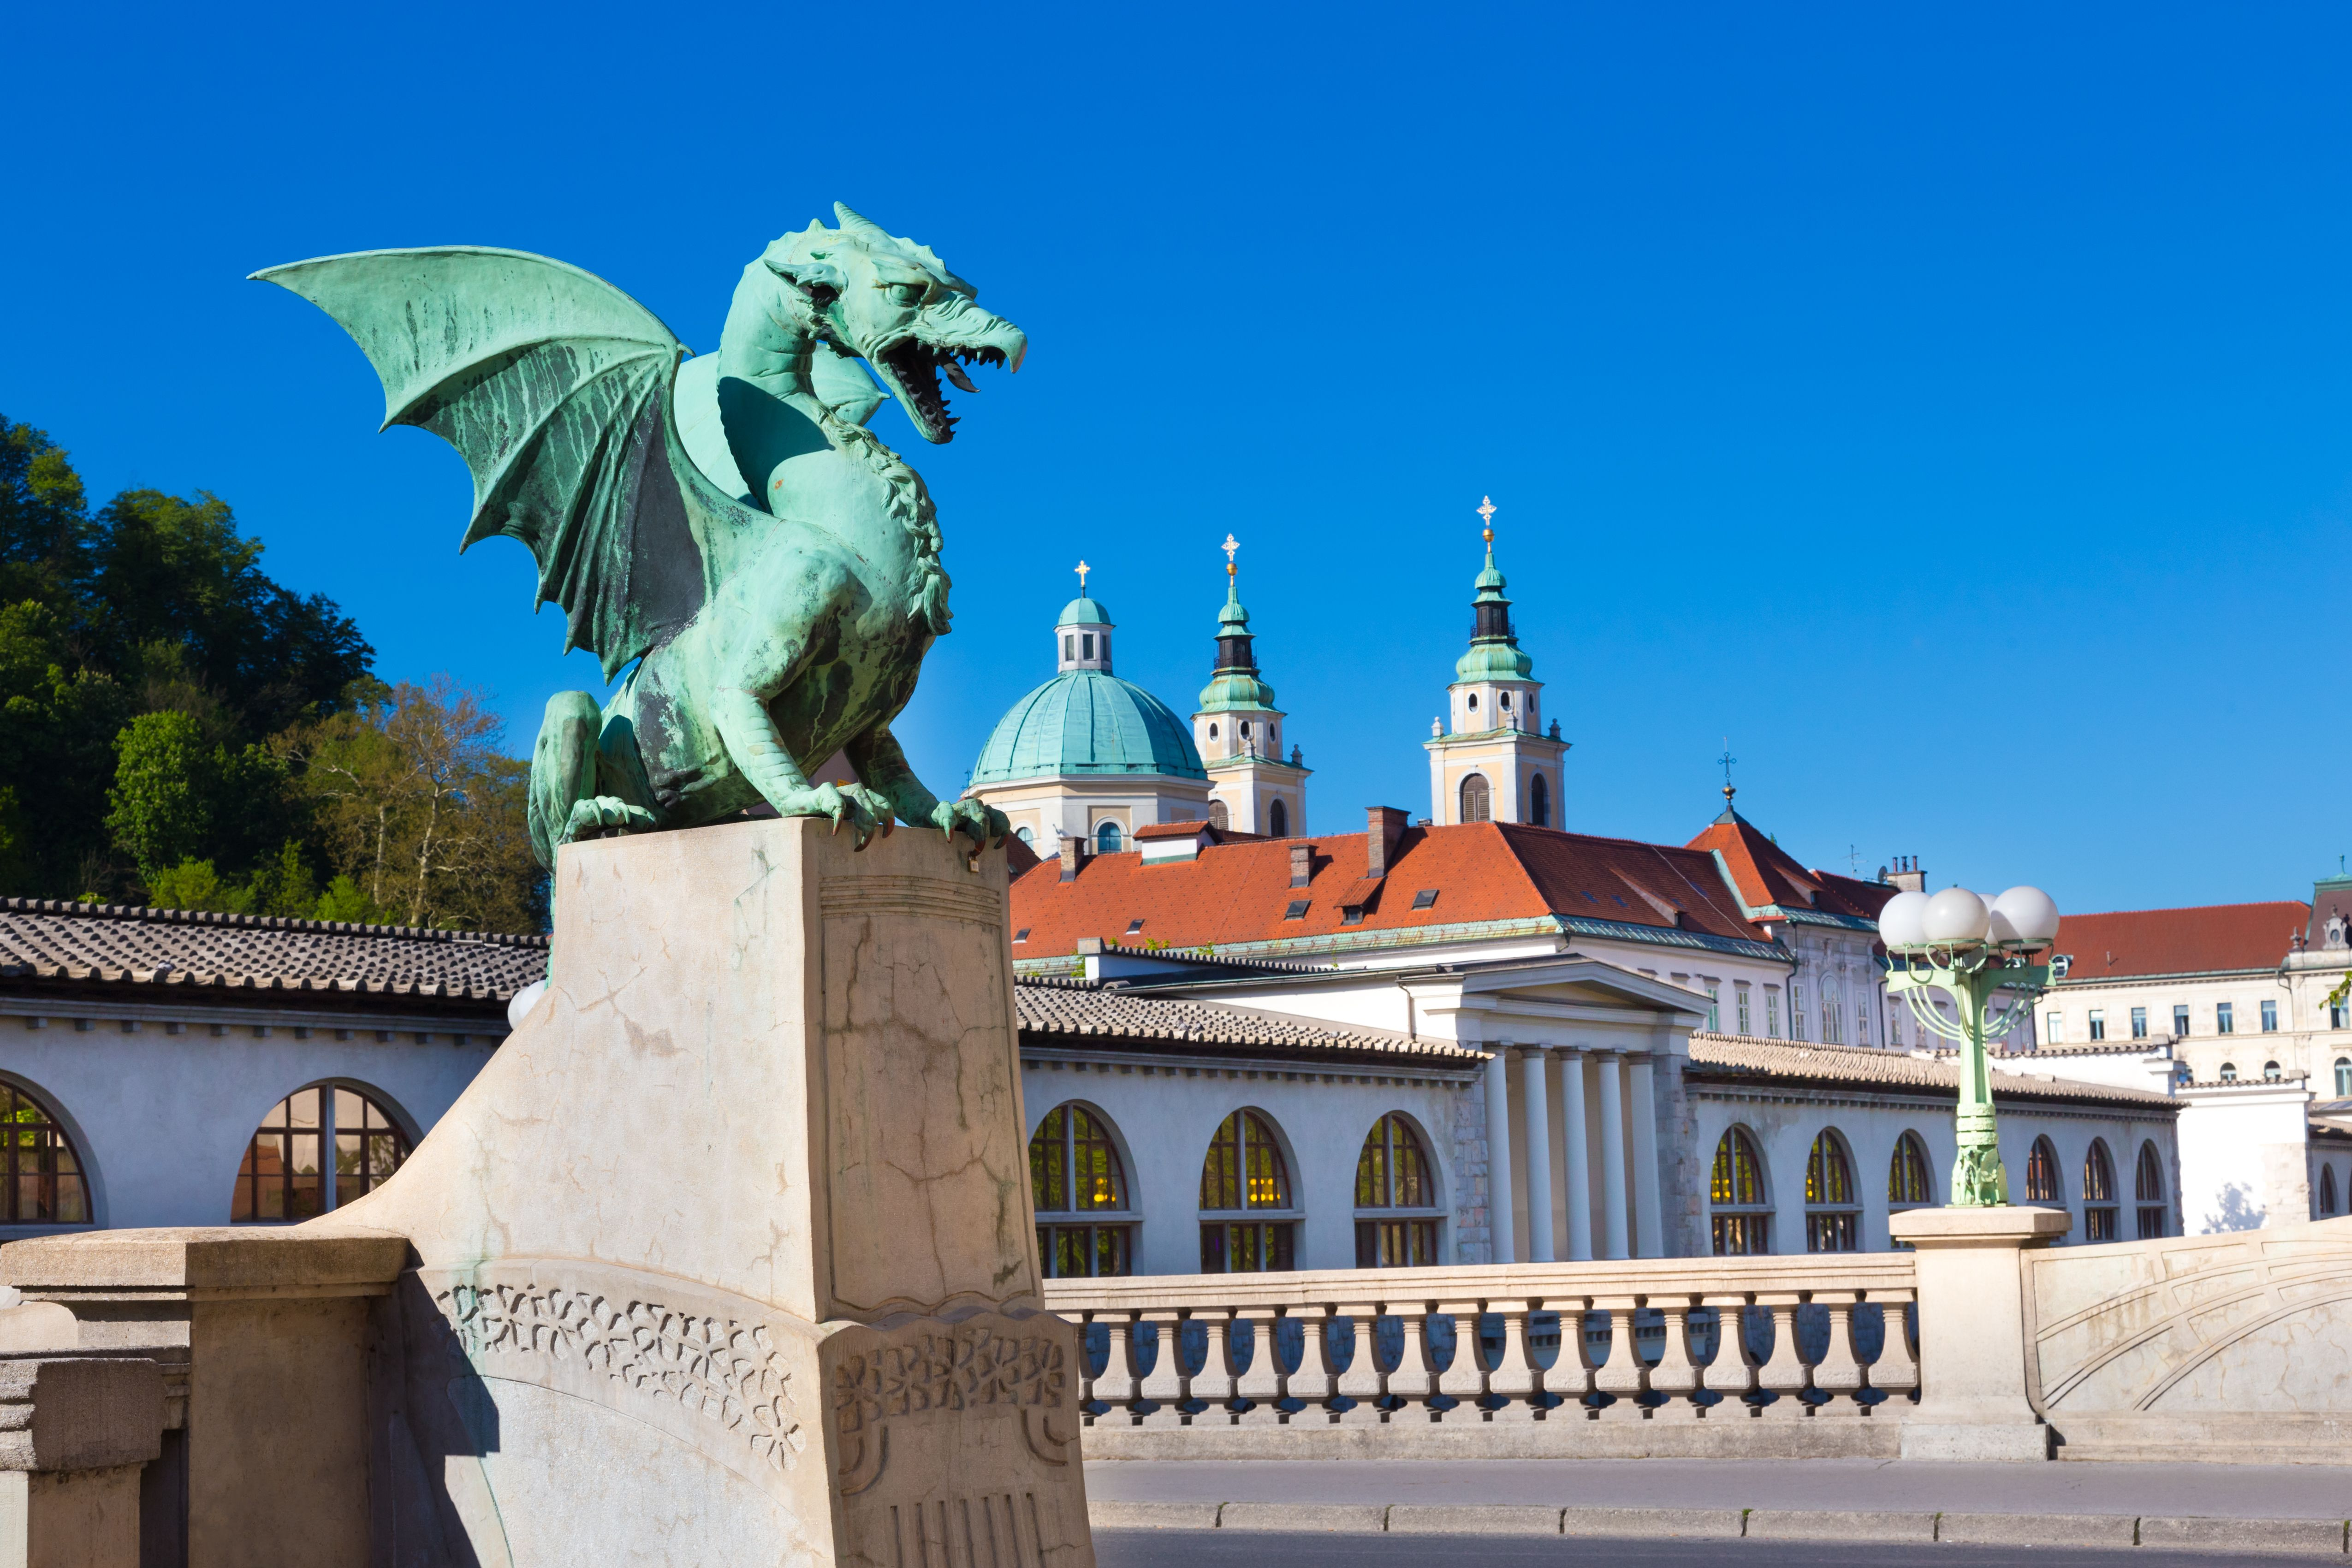 Ljubljana__Dragon_Bridge___c__Ljubljana_Tourism__Mostphotos.jpg